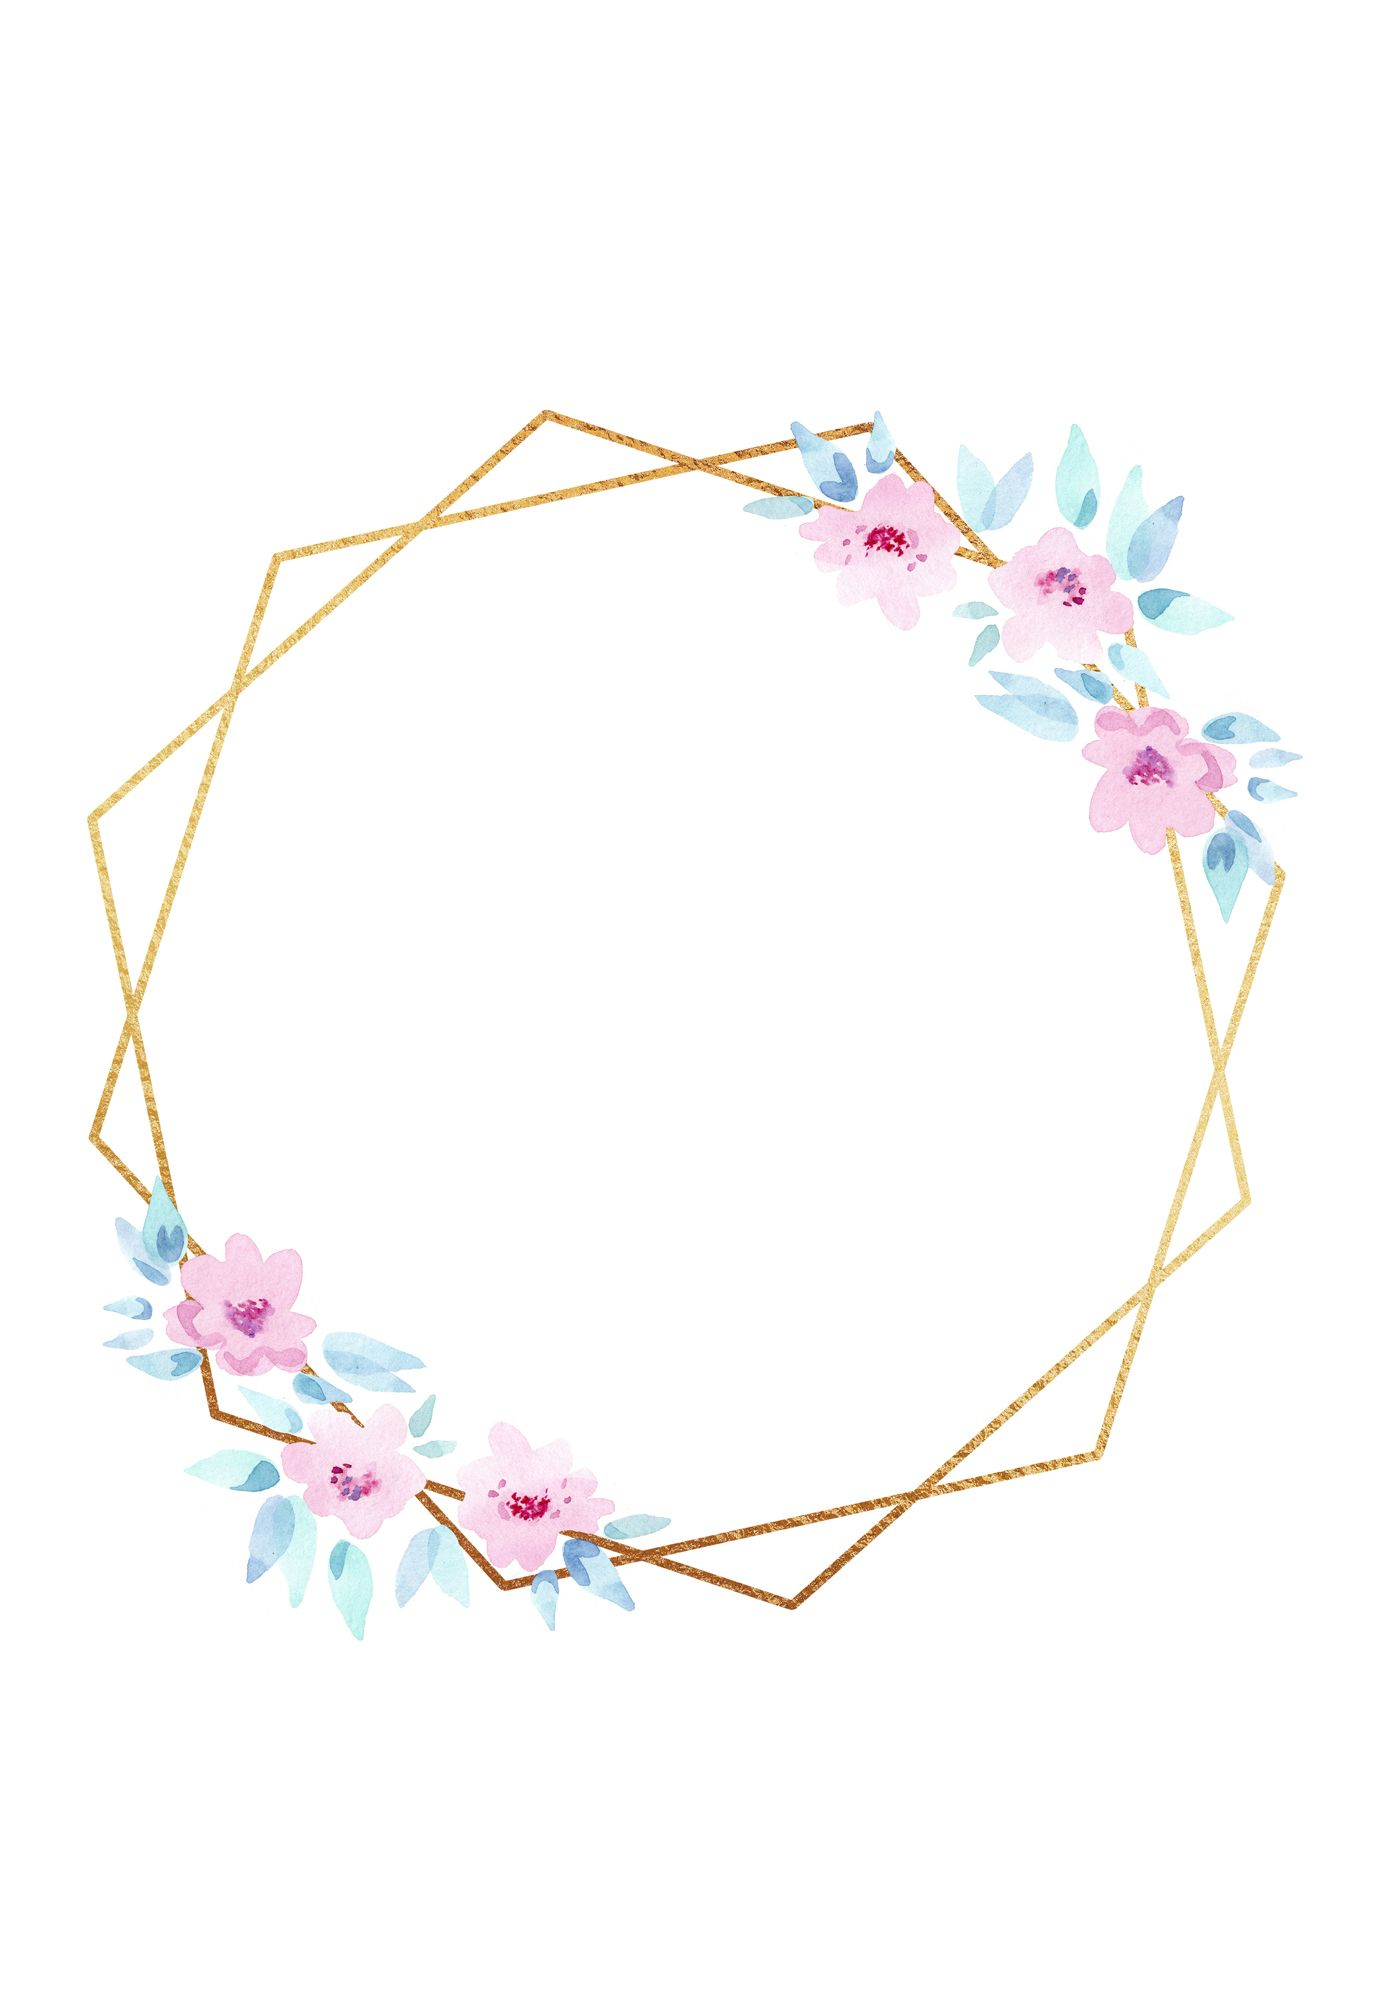 Gold Polygonal Floral Frames Clipart Crystal Frames Png For Etsy In 2021 Hand Embroidery Patterns Flowers Hand Embroidery Kit Hand Tattoos For Girls